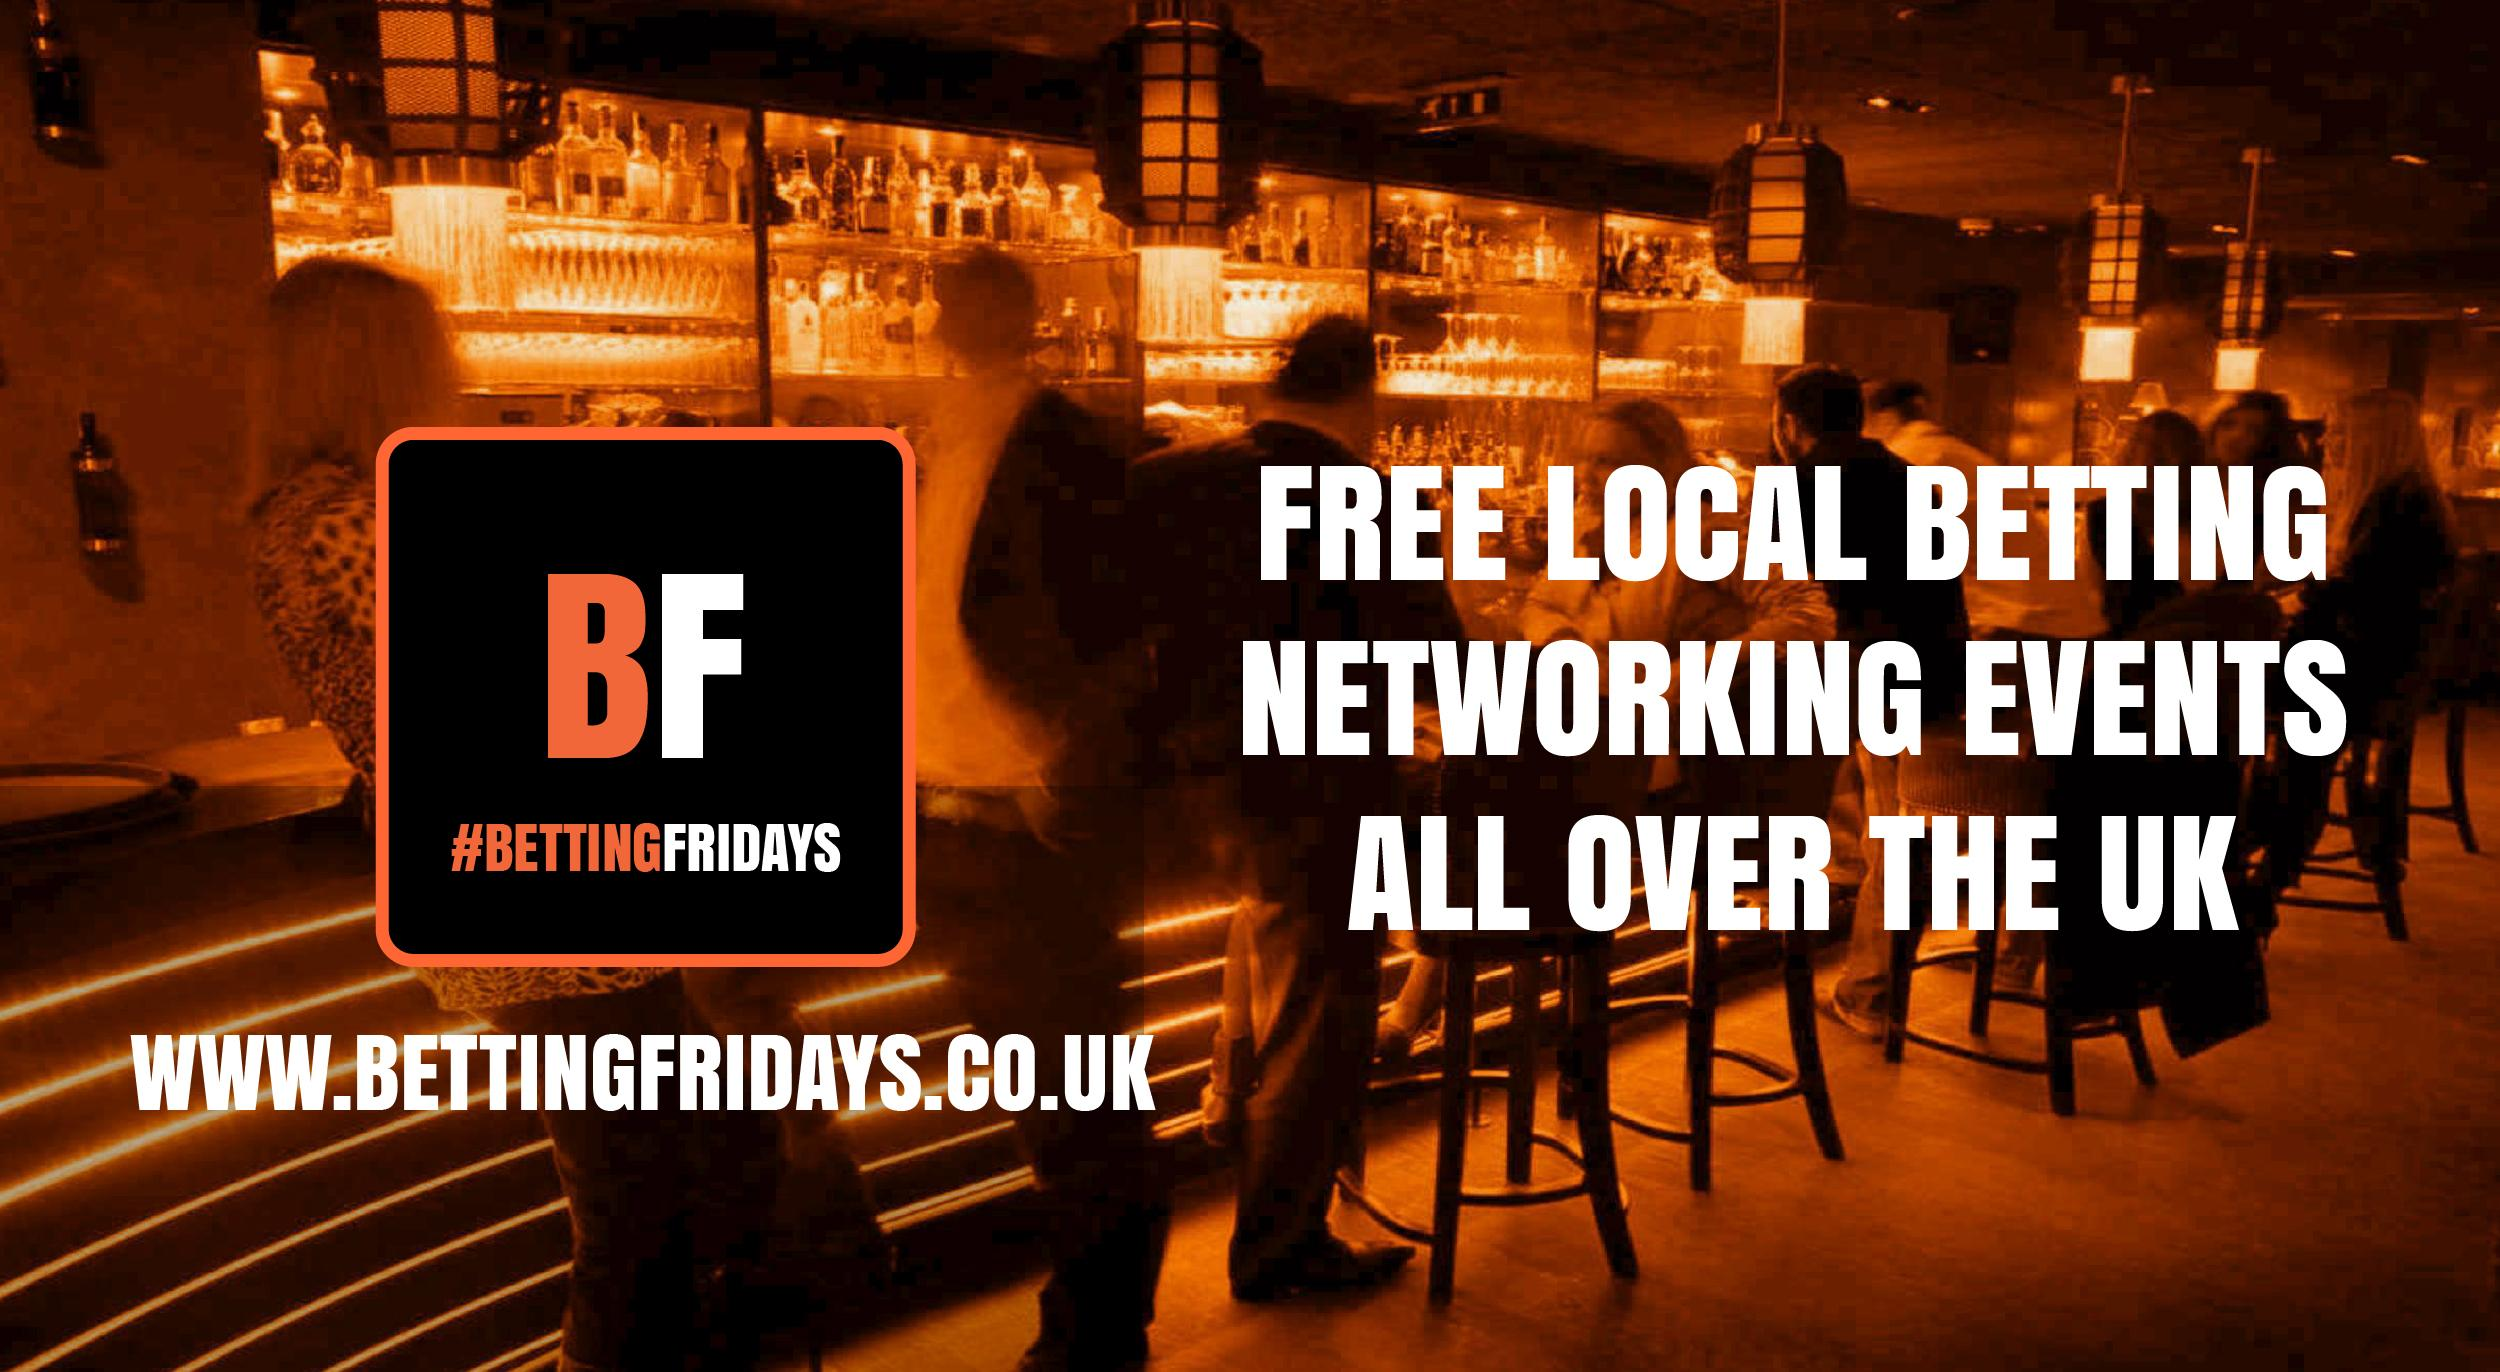 Betting Fridays! Free betting networking event in Prescot